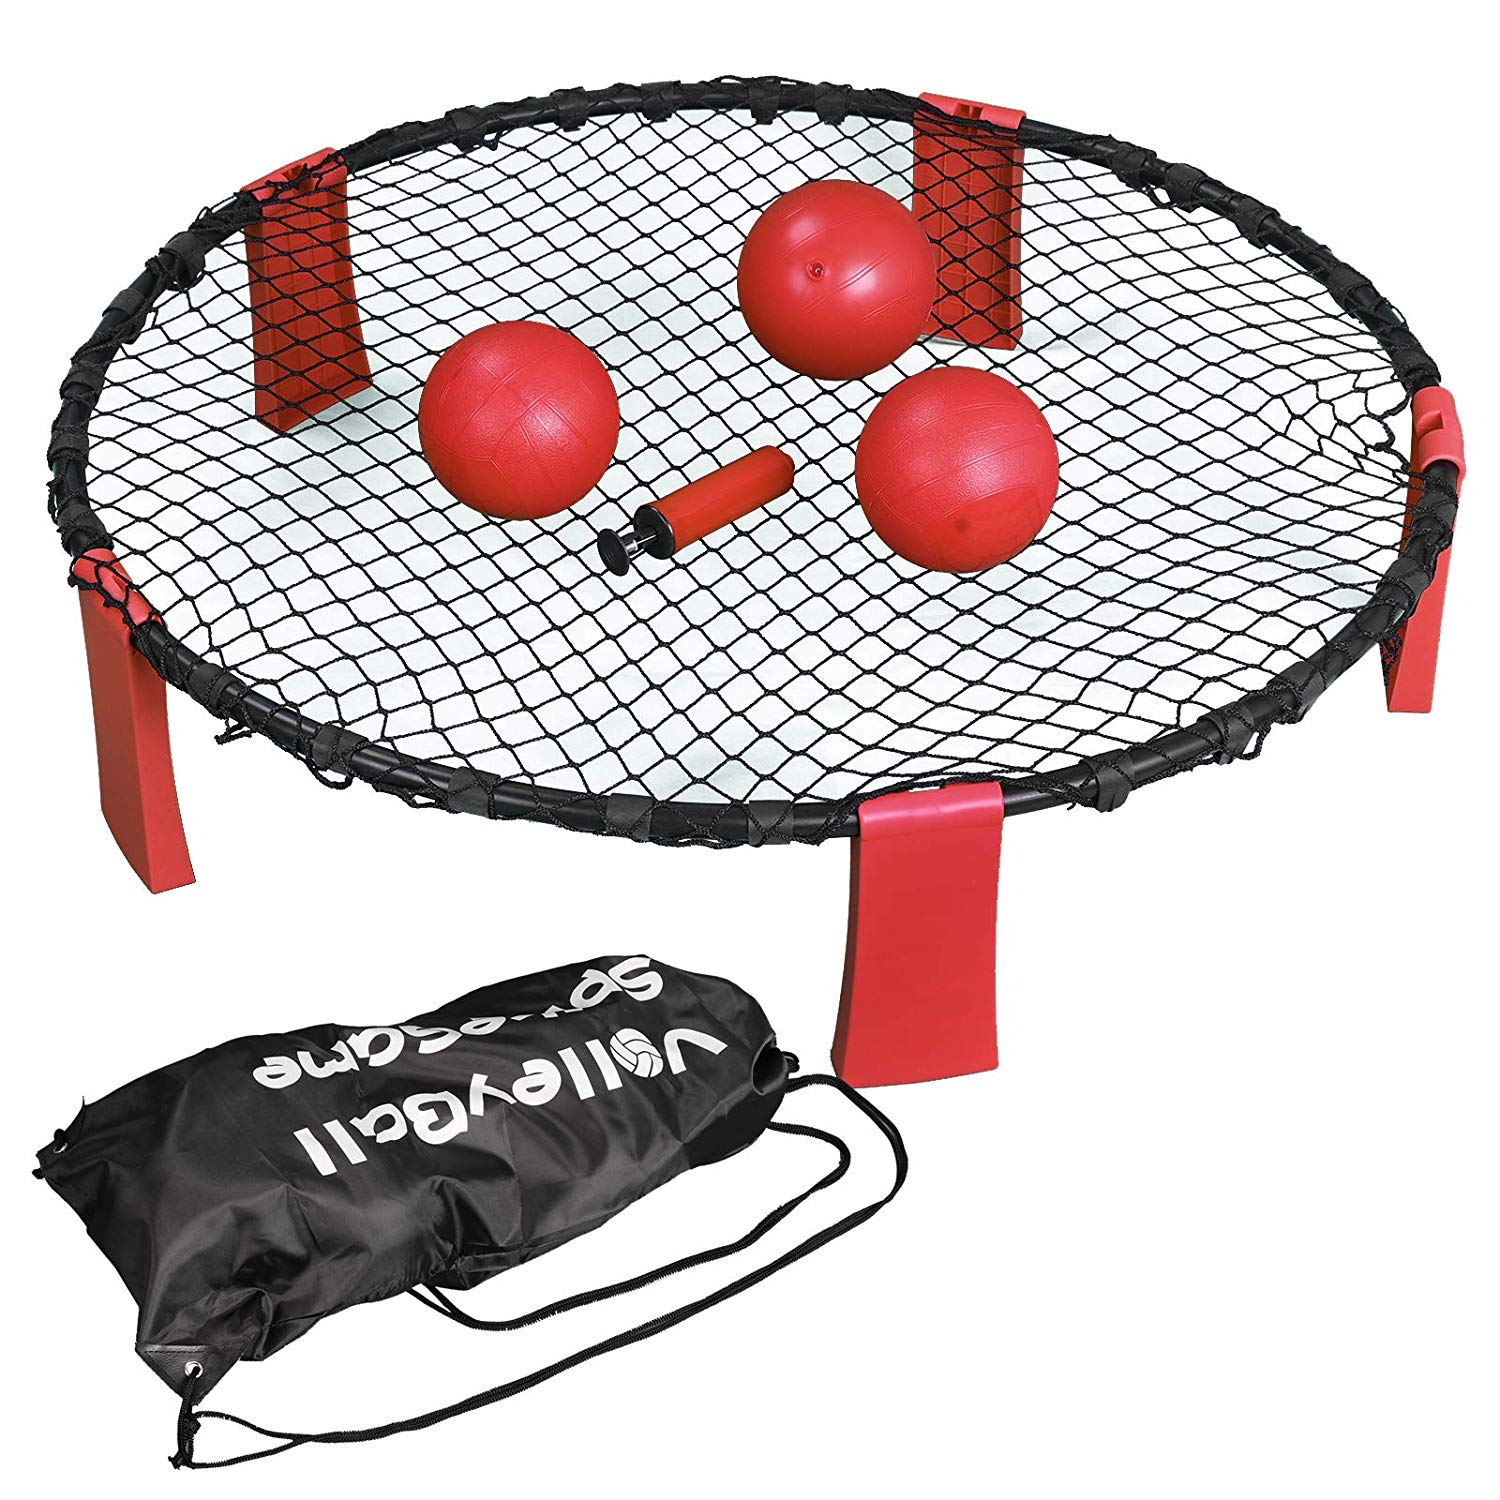 ZENSTYLE Volleyball Spike Game Set Strike Ball Game Set Included 3 Balls, Rules, Carrying Case, Outdoor/Indoor Bounce Game